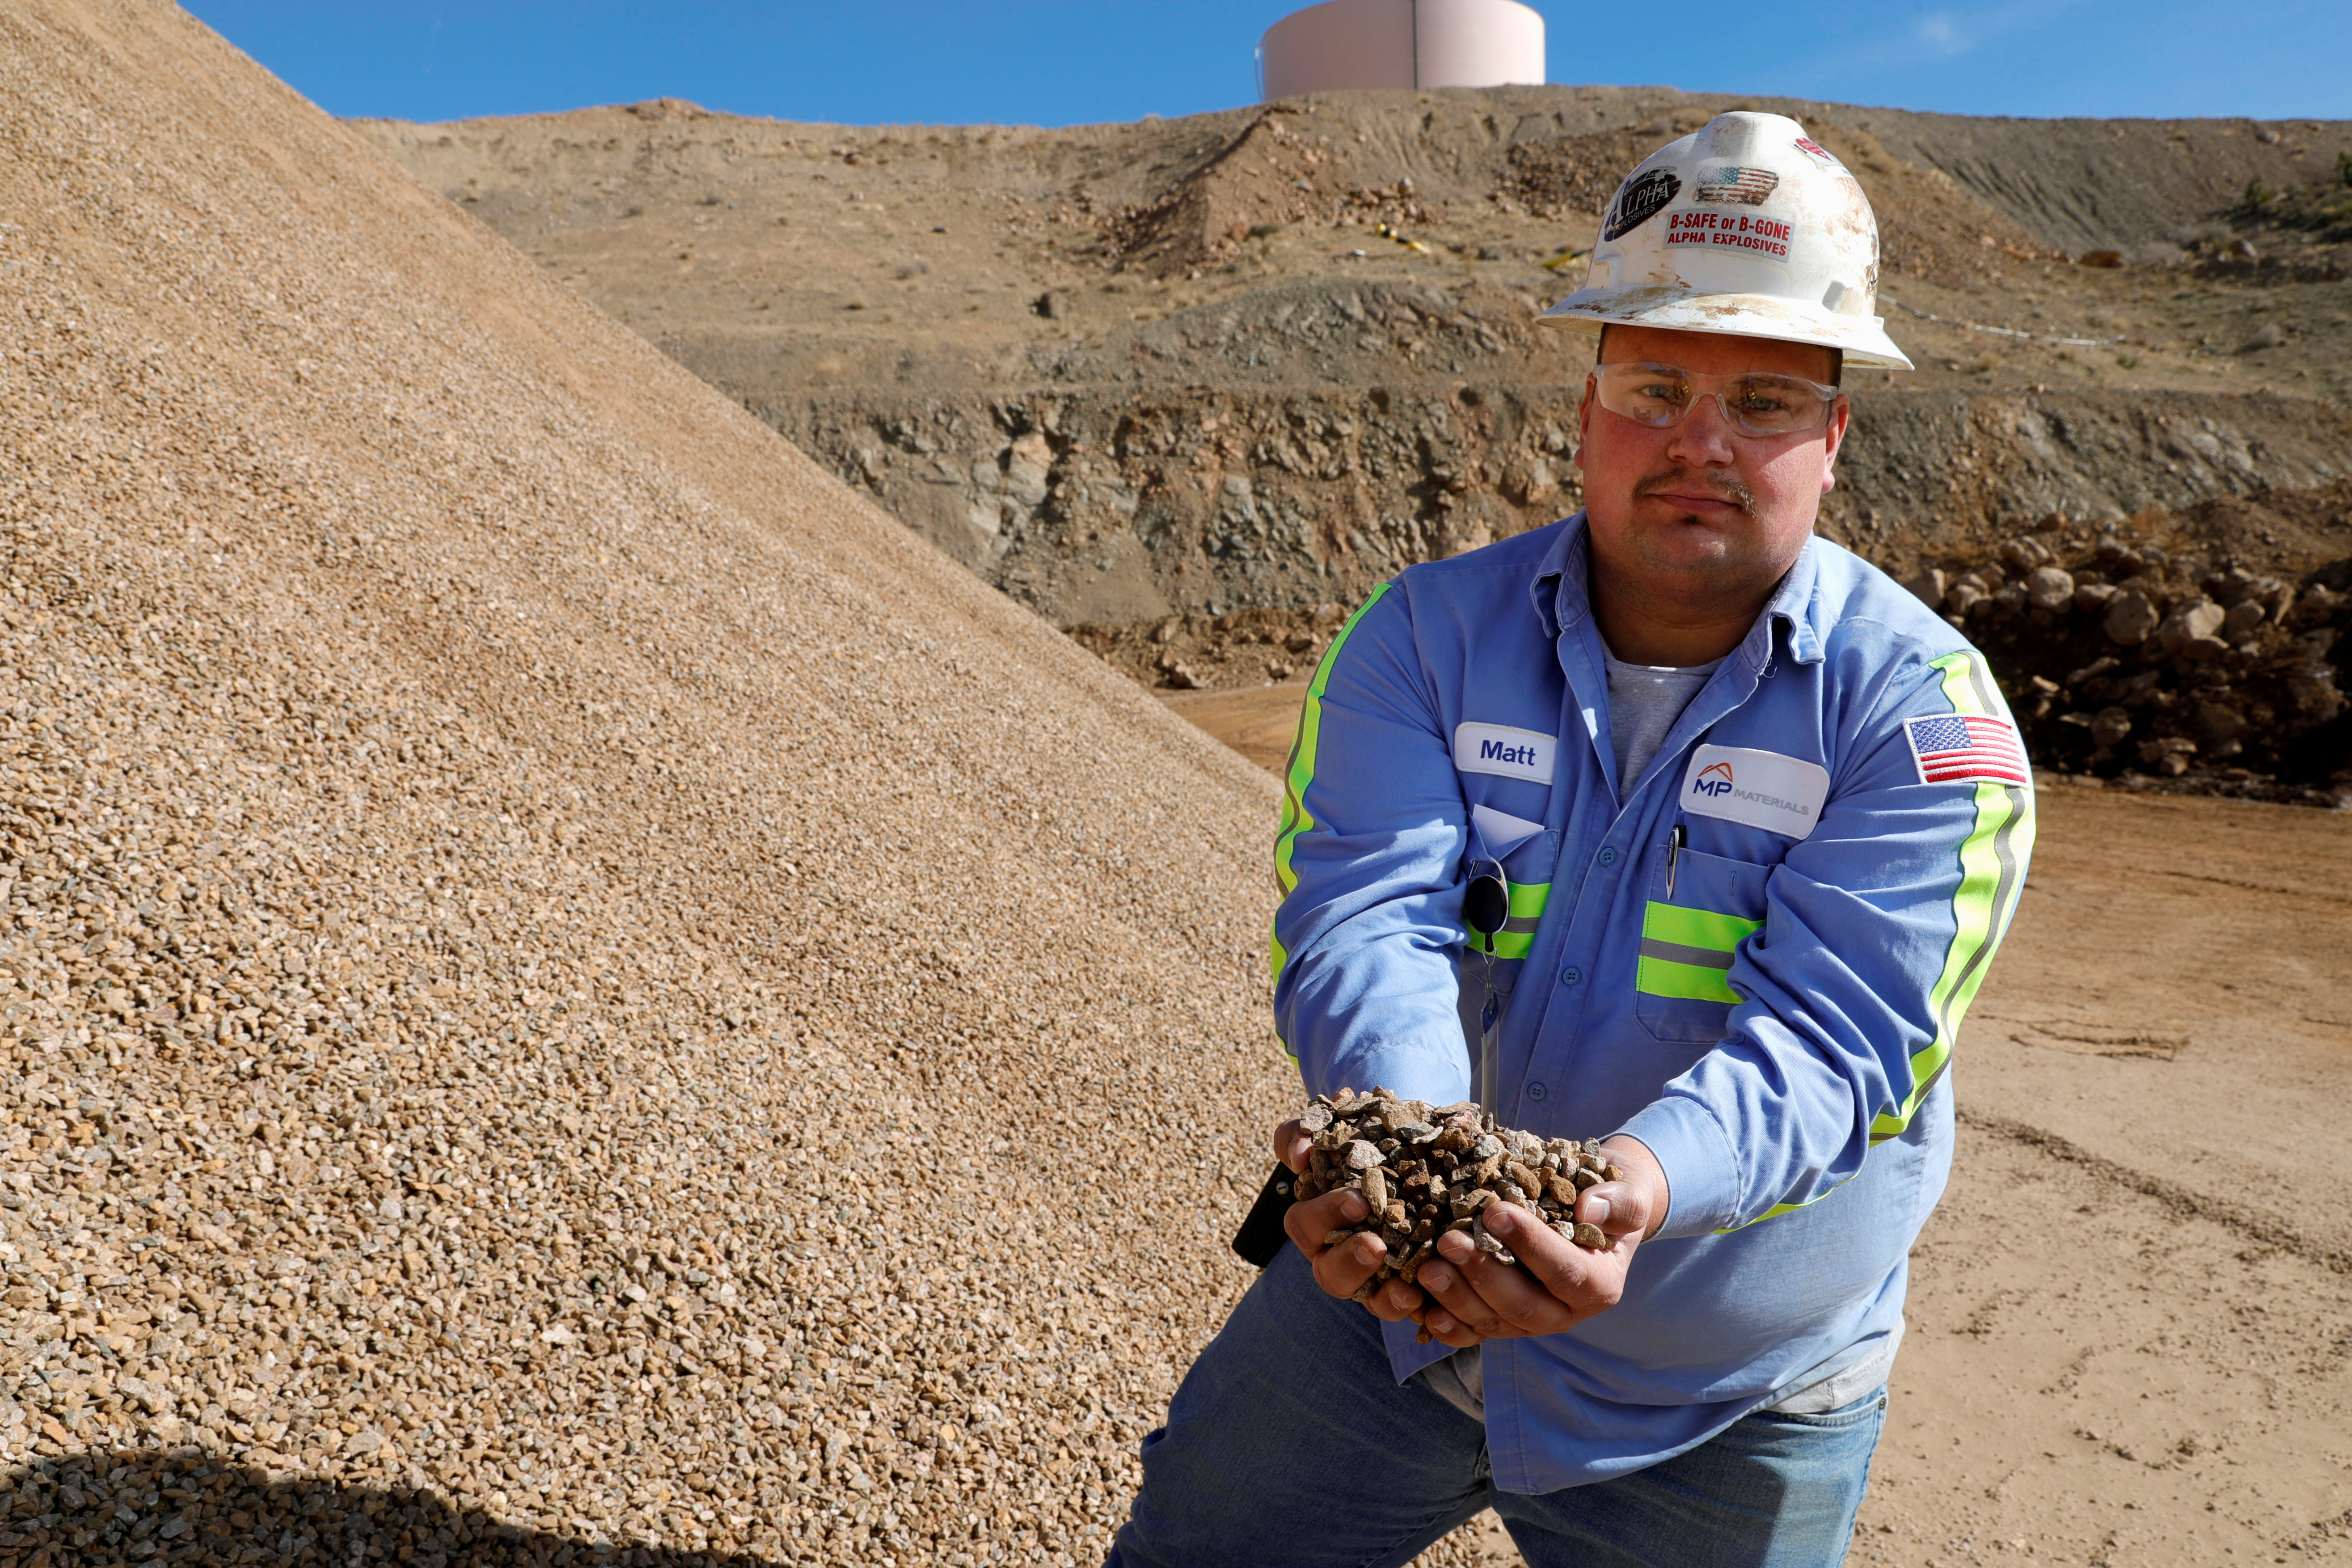 Matt Green, mining/crushing supervisor at MP Materials, displays crushed ore before it is sent to the mill at the MP Materials rare earth mine in Mountain Pass, California, U.S. January 30, 2020. REUTERS/Steve Marcus